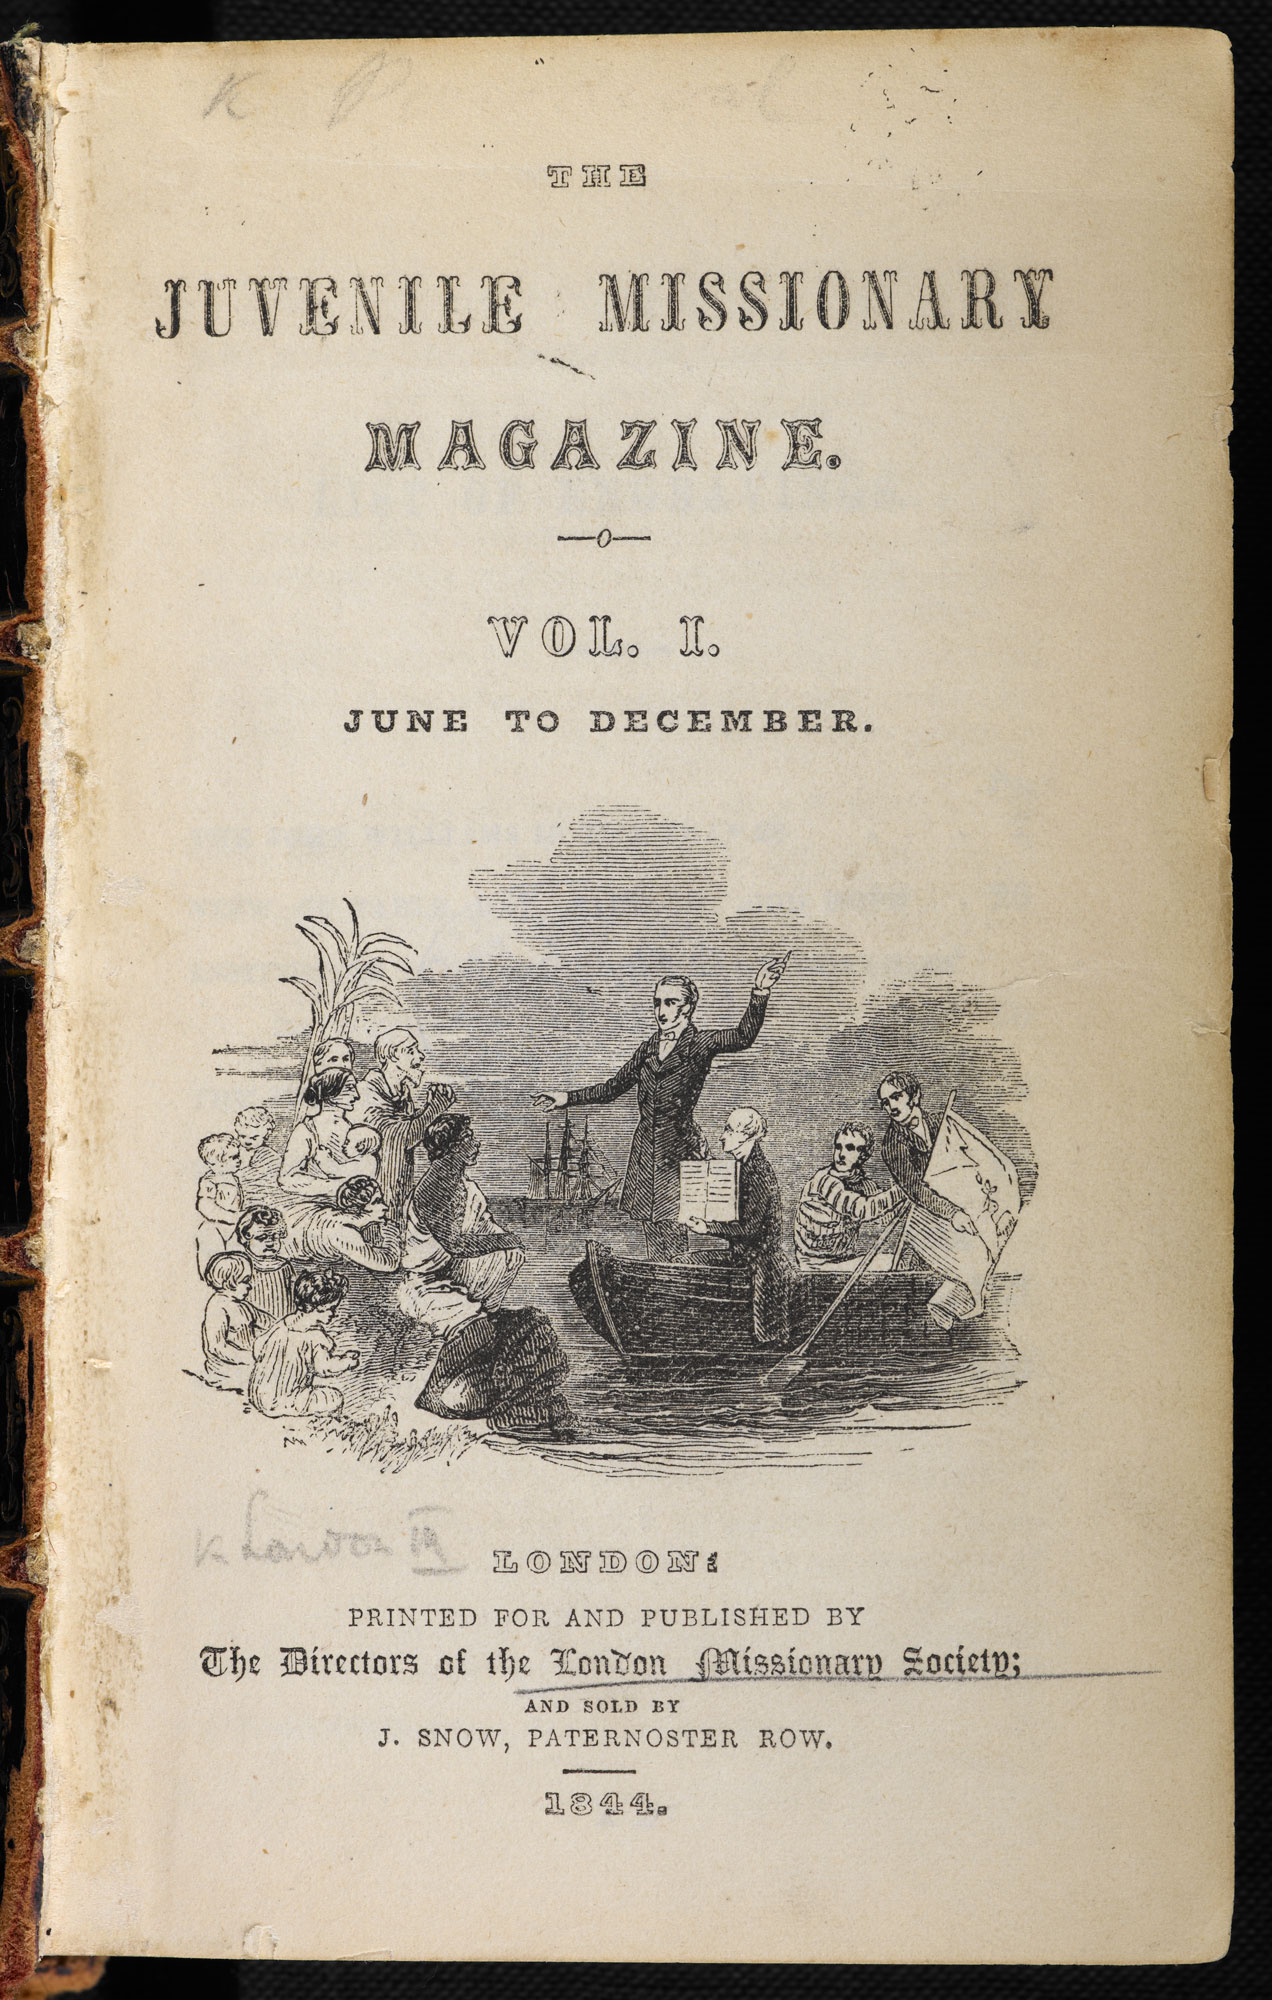 Missionary magazine for children [page: vol. I title page]